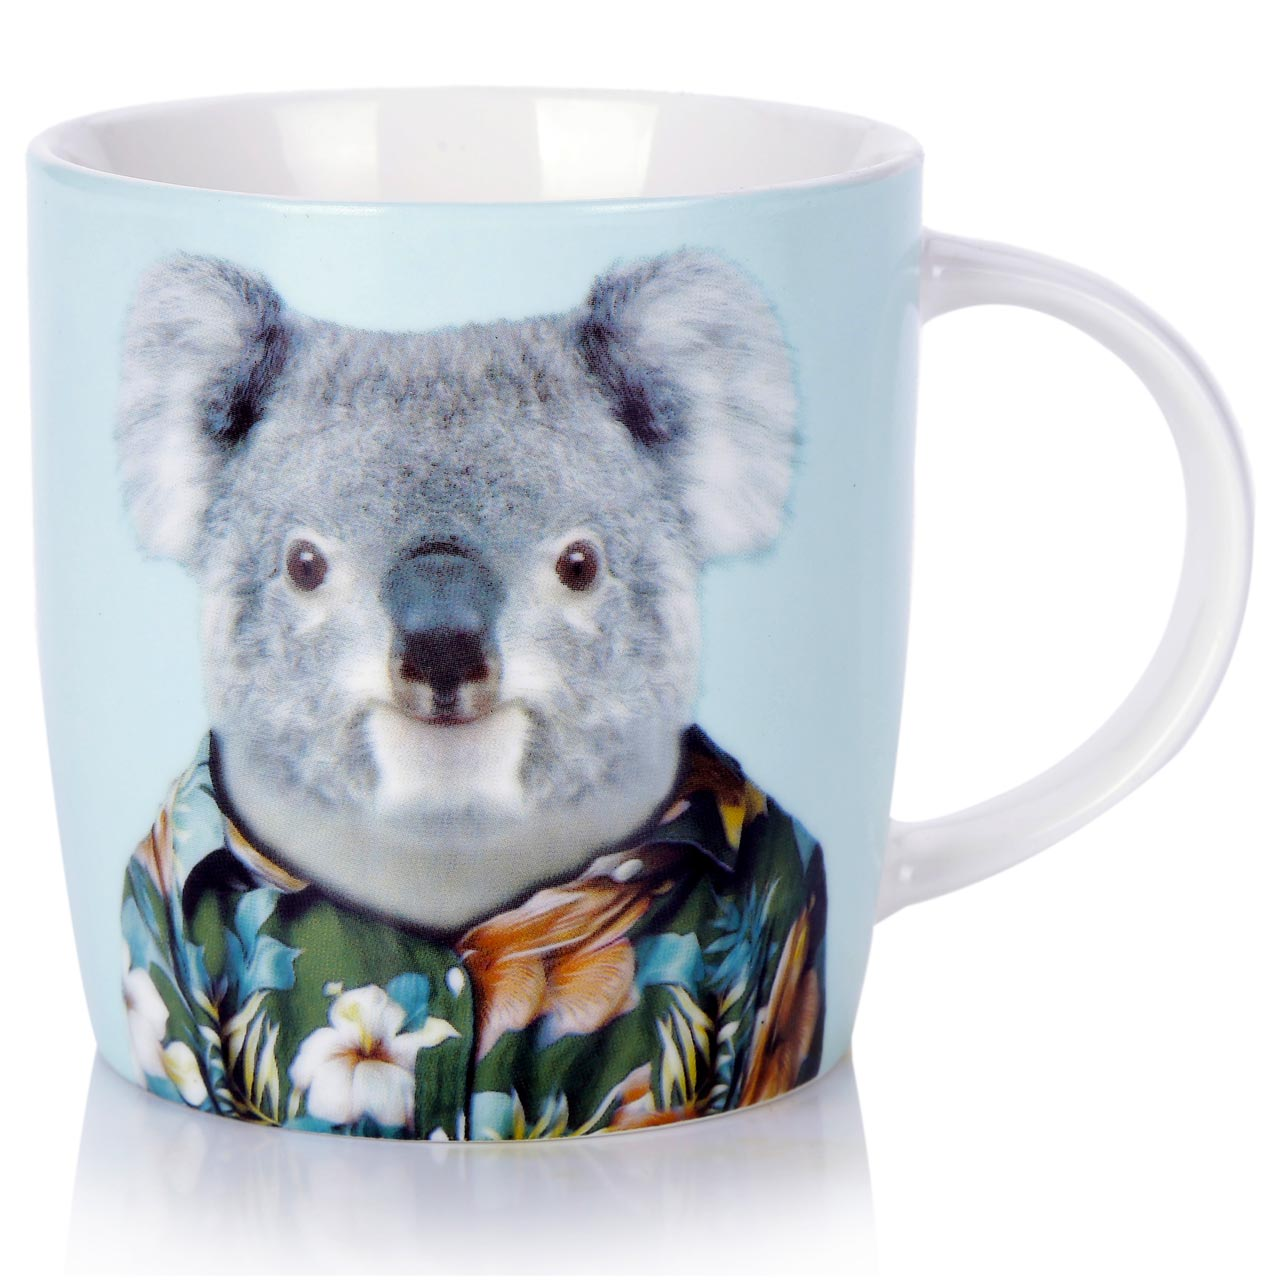 Porcelain Coffee and Tea Mug Koala | The Design Gift Shop